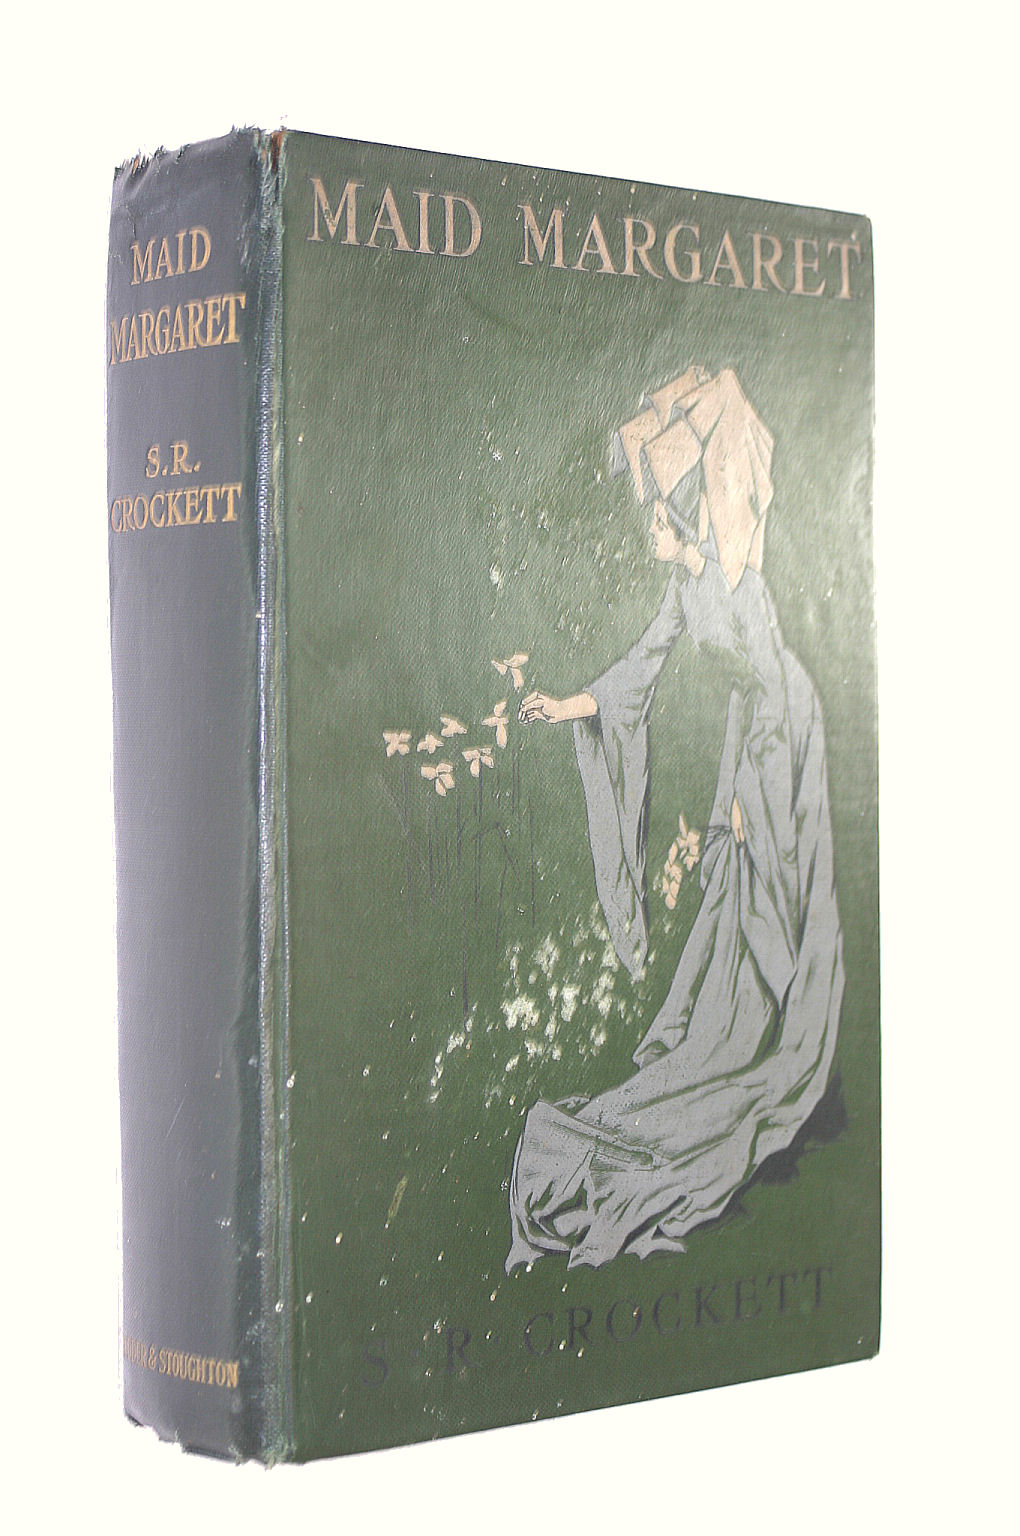 Image for Maid Margaret Of Galloway by S.R. Crockett